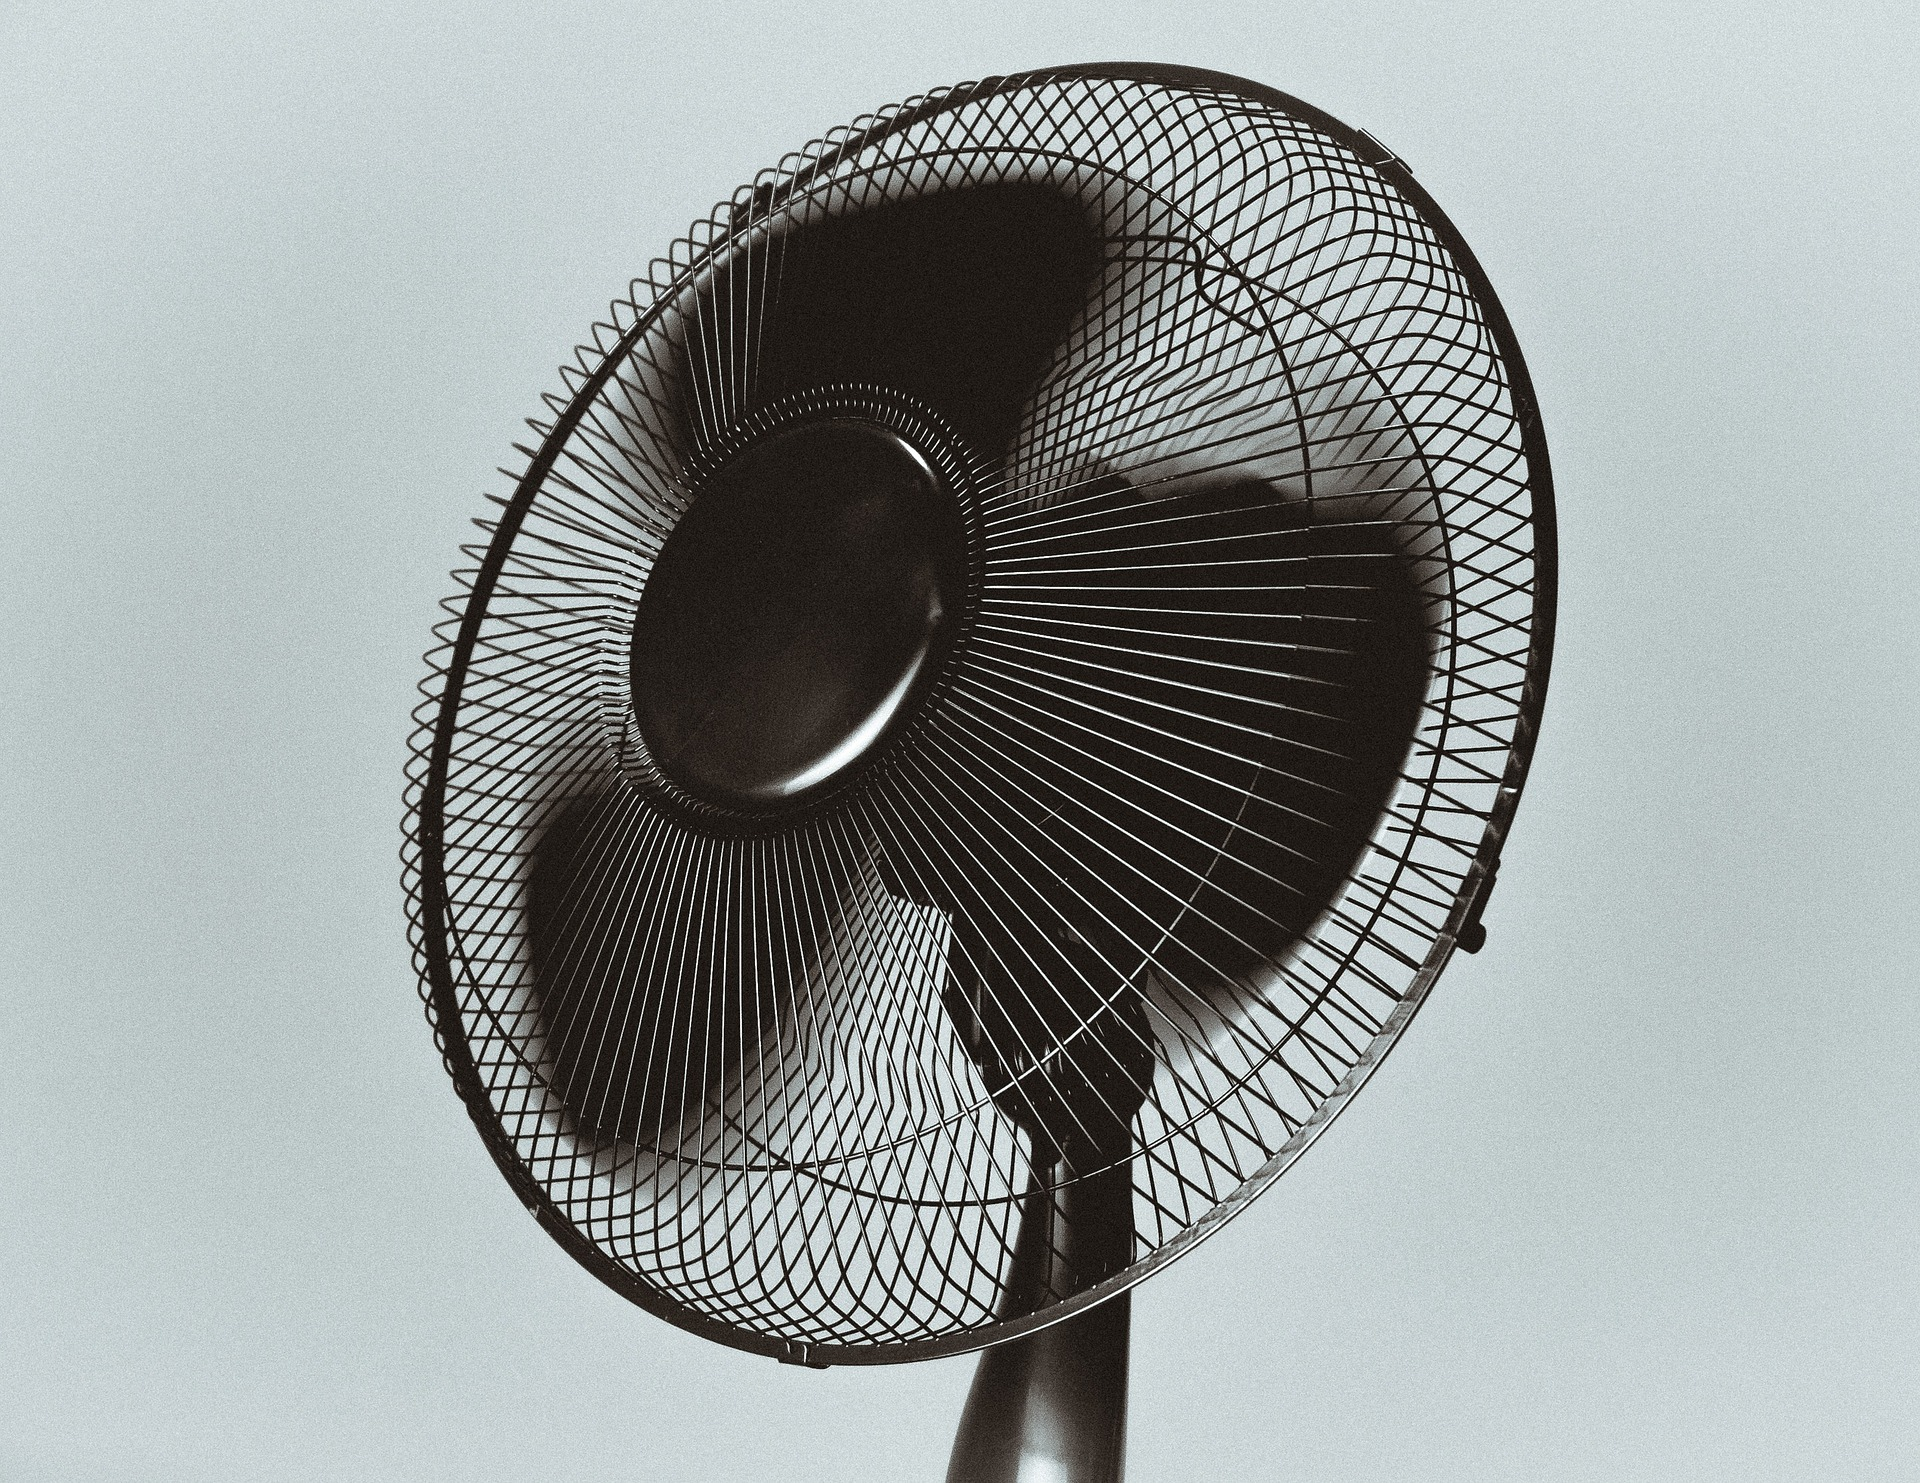 Keeping The Fan Turned On All Night While Sleeping Can Cause You Health Problems